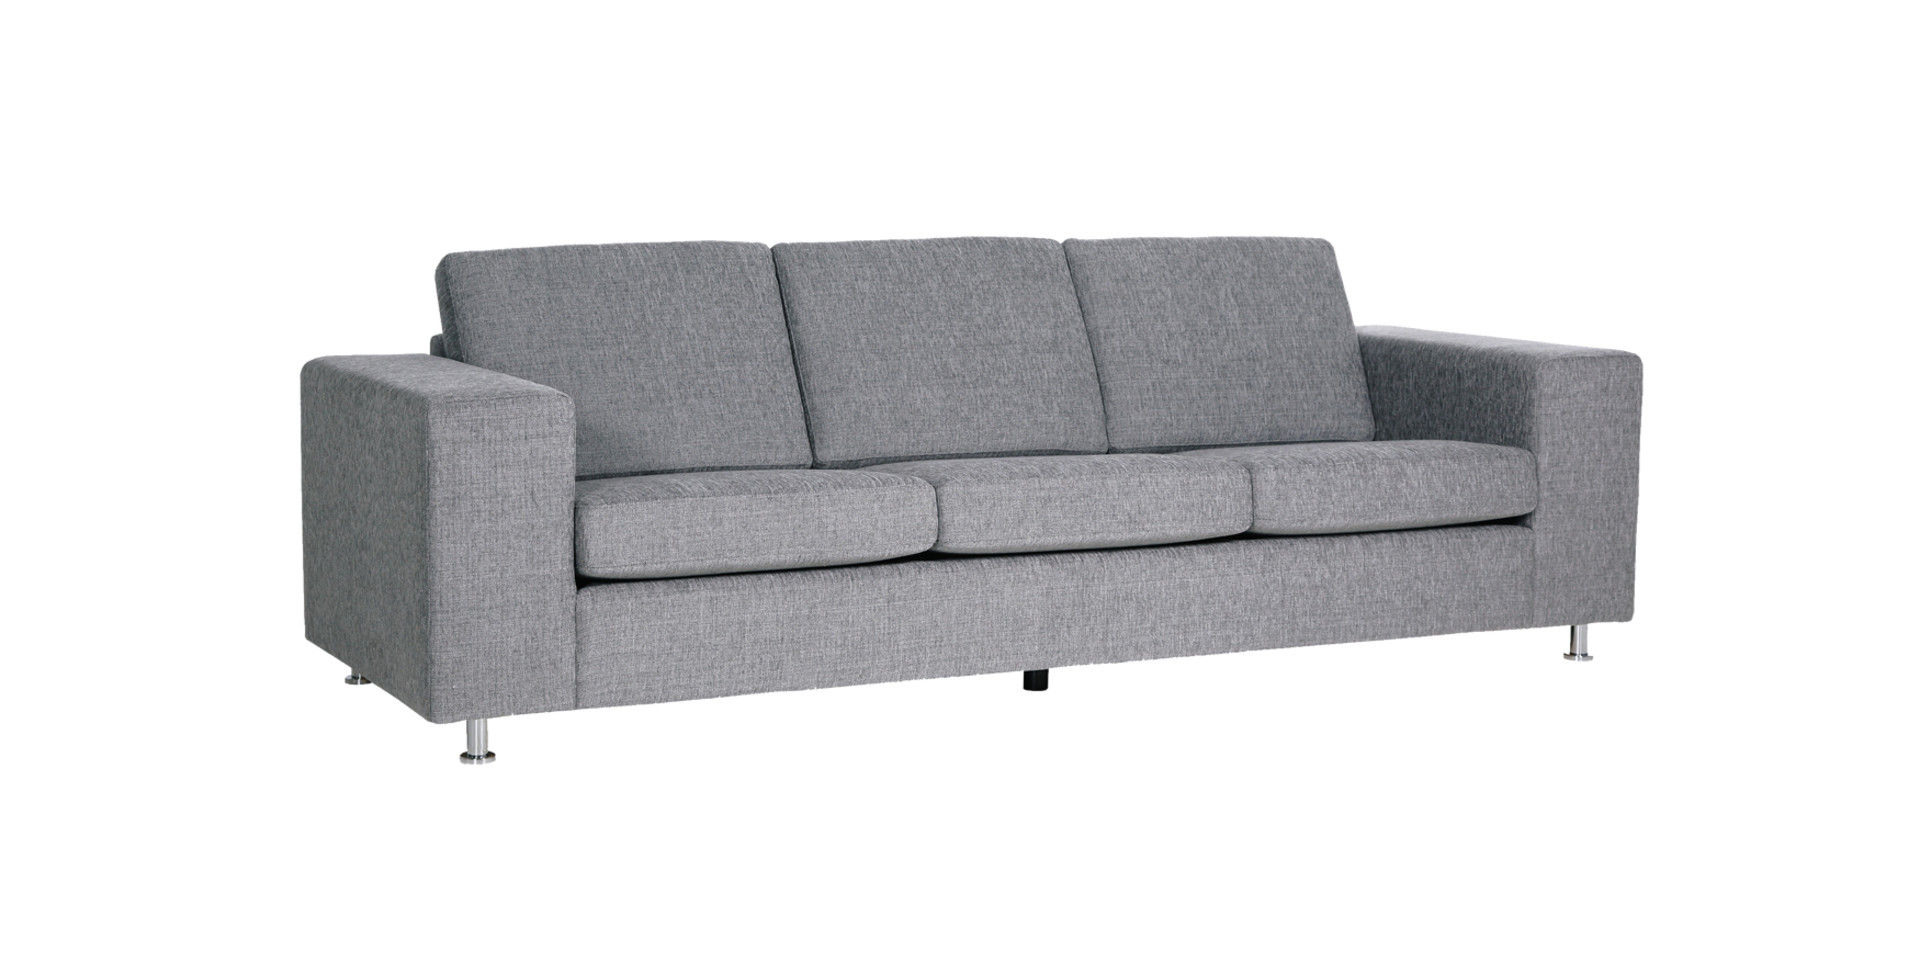 sits-palma-canape-3seater_veraam1c9grey_2_0